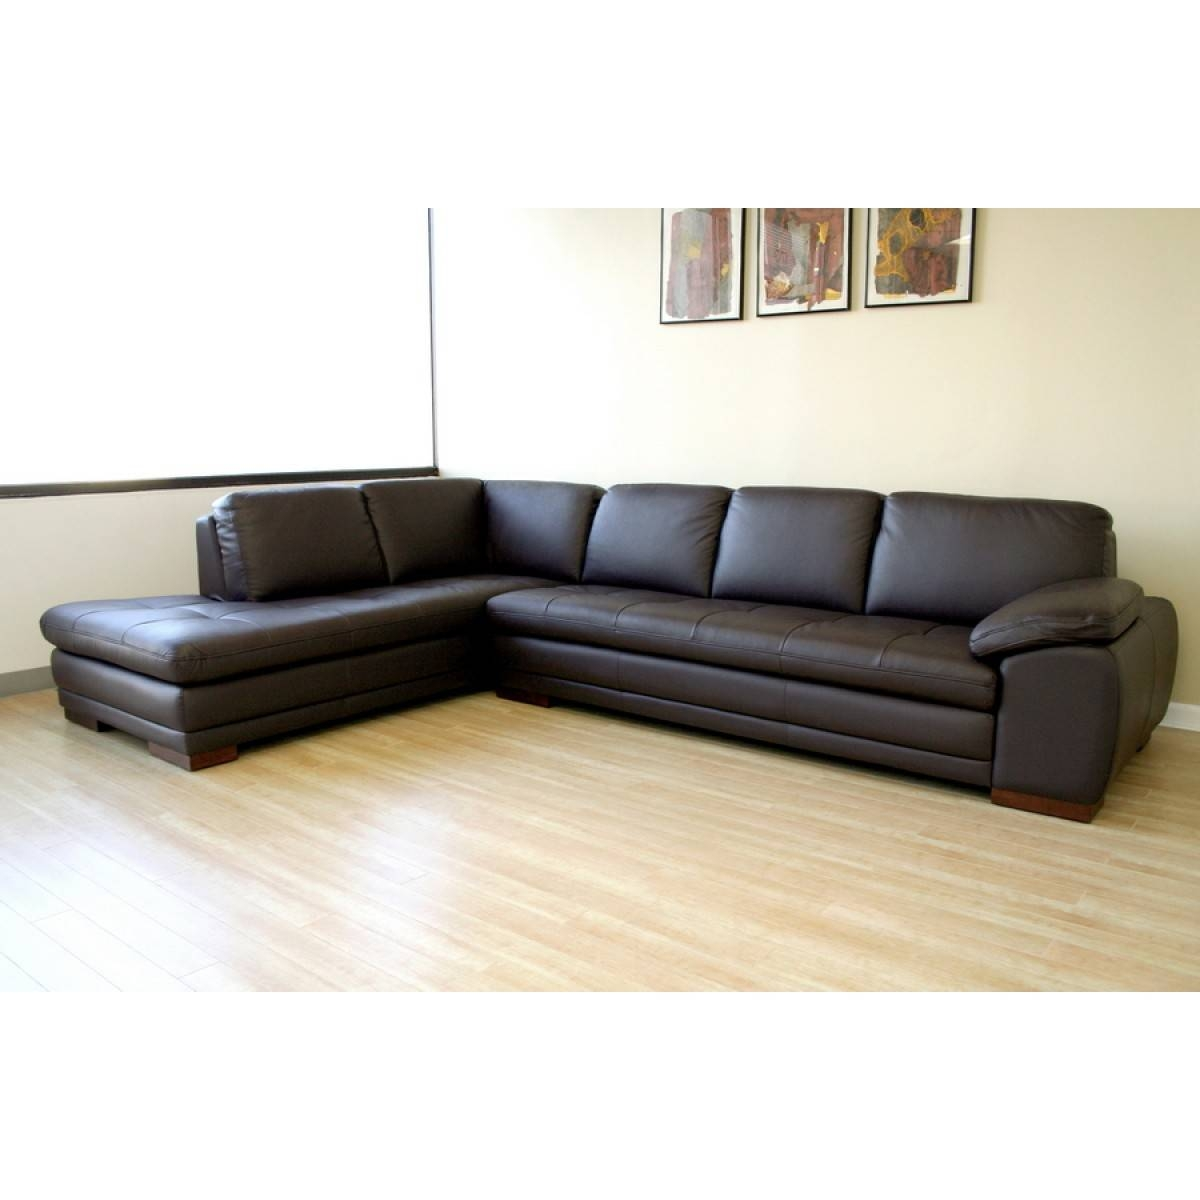 Diana Dark Brown Sofa/chaise Sectional Reverse | See White within Diana Dark Brown Leather Sectional Sofa Set (Image 22 of 30)